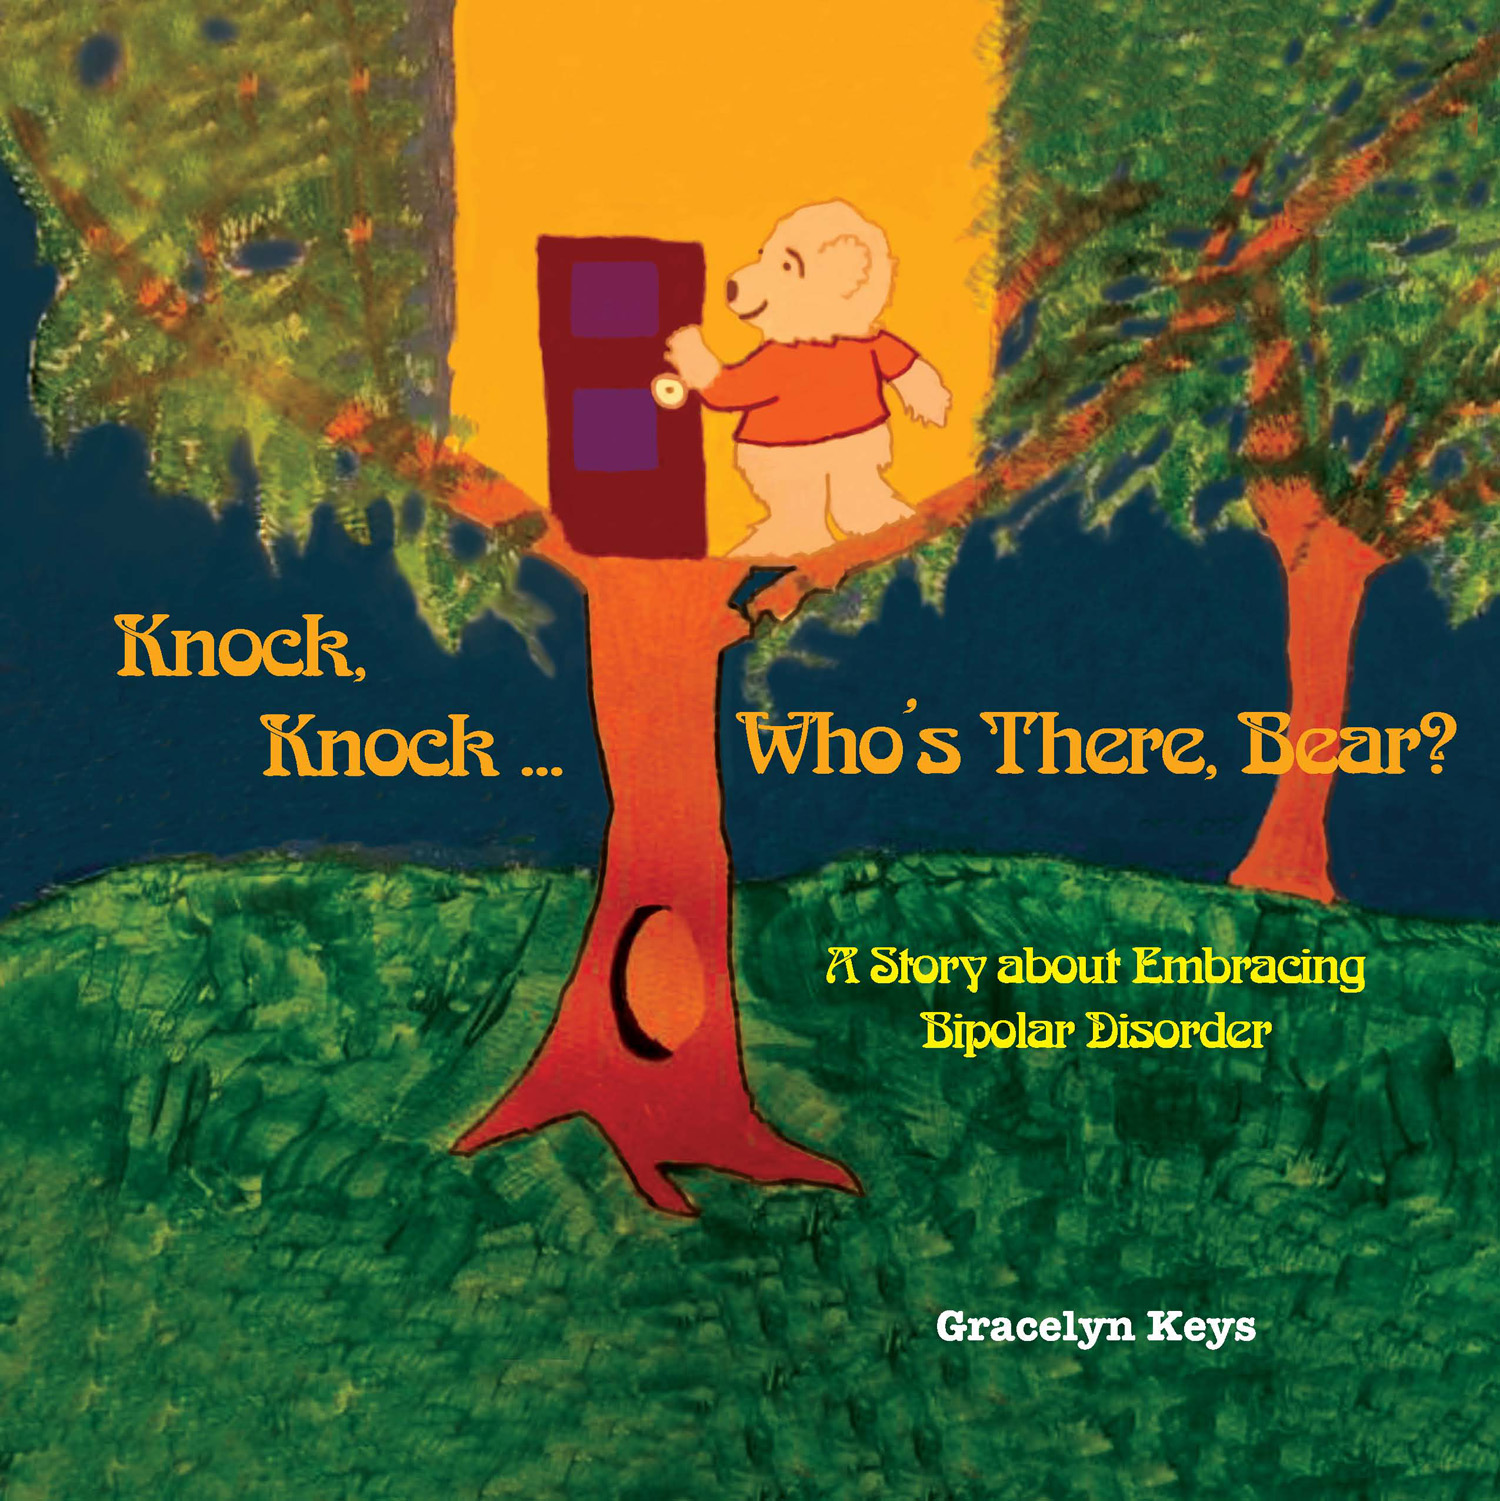 Knock, Knock ... Who's There, Bear? A Story about Embracing Bipolar Disorder By Gracelyn Keys